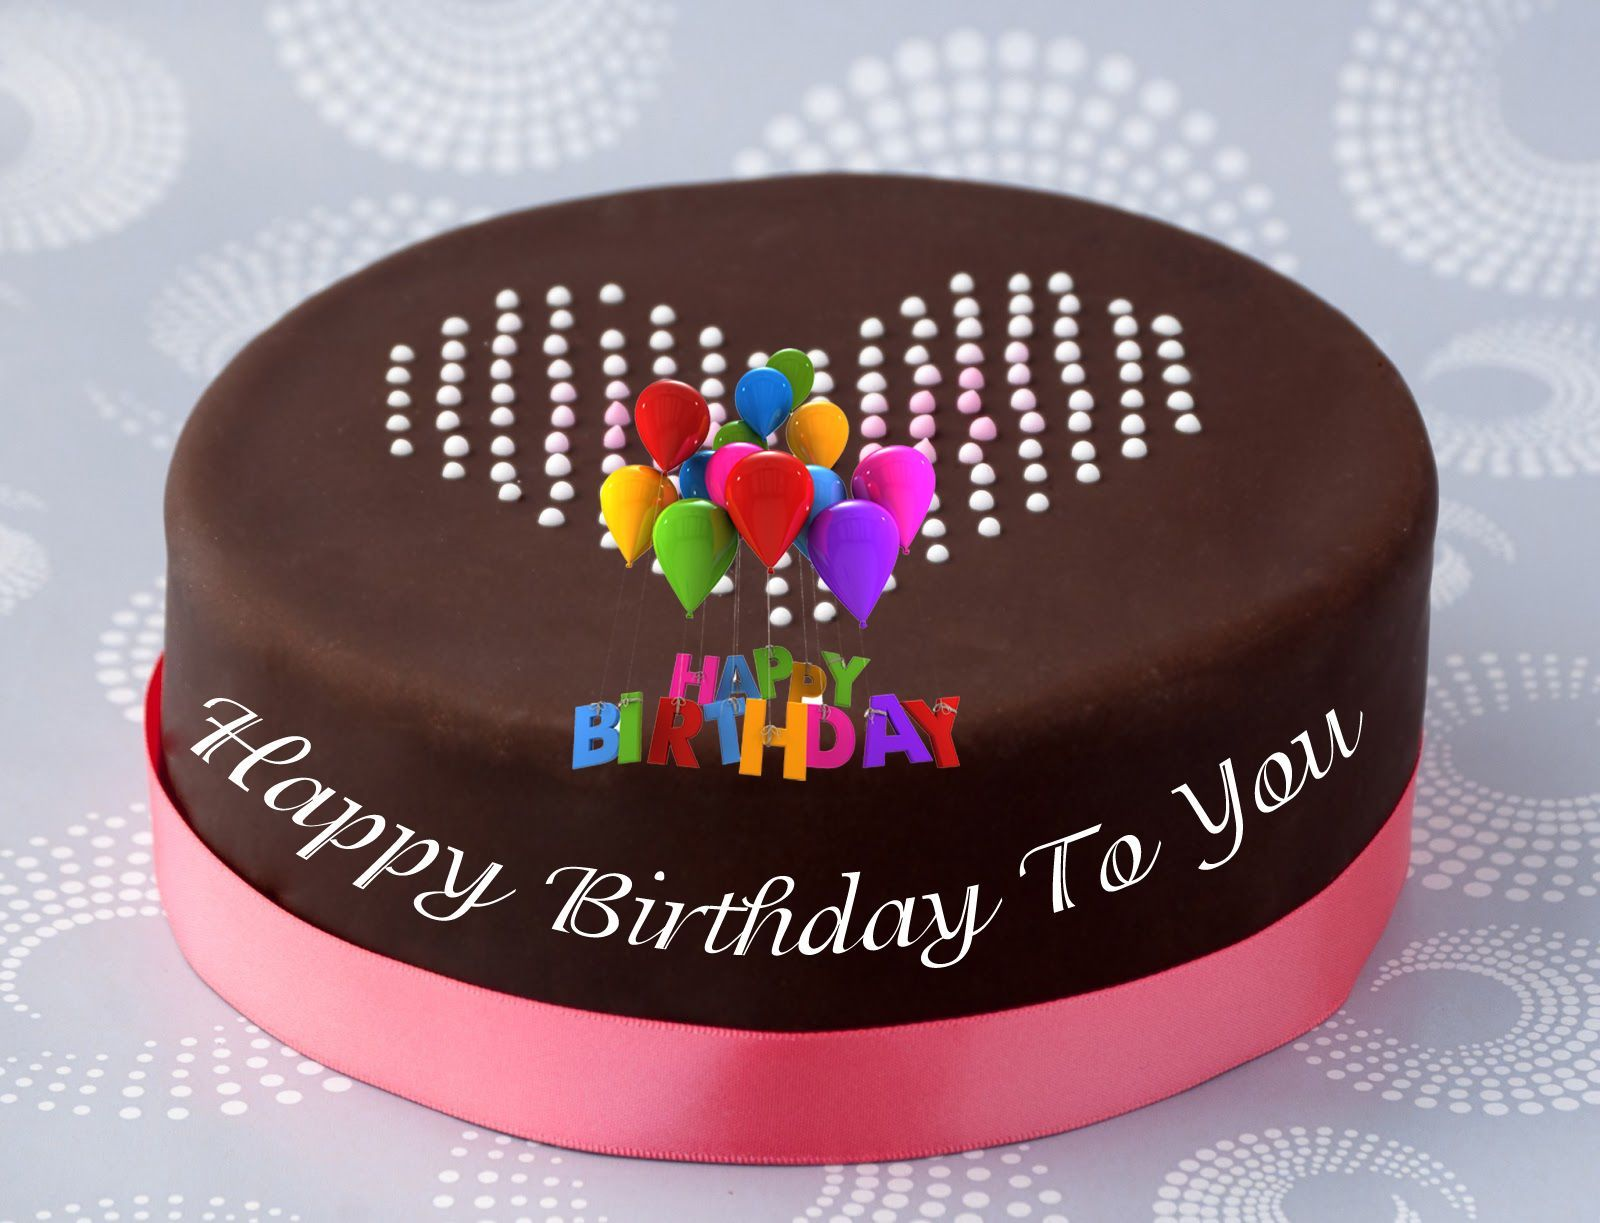 Download Birthday Cake Pictures Free : Happy Birthday Cake Images Free Download Happy Birthday ...